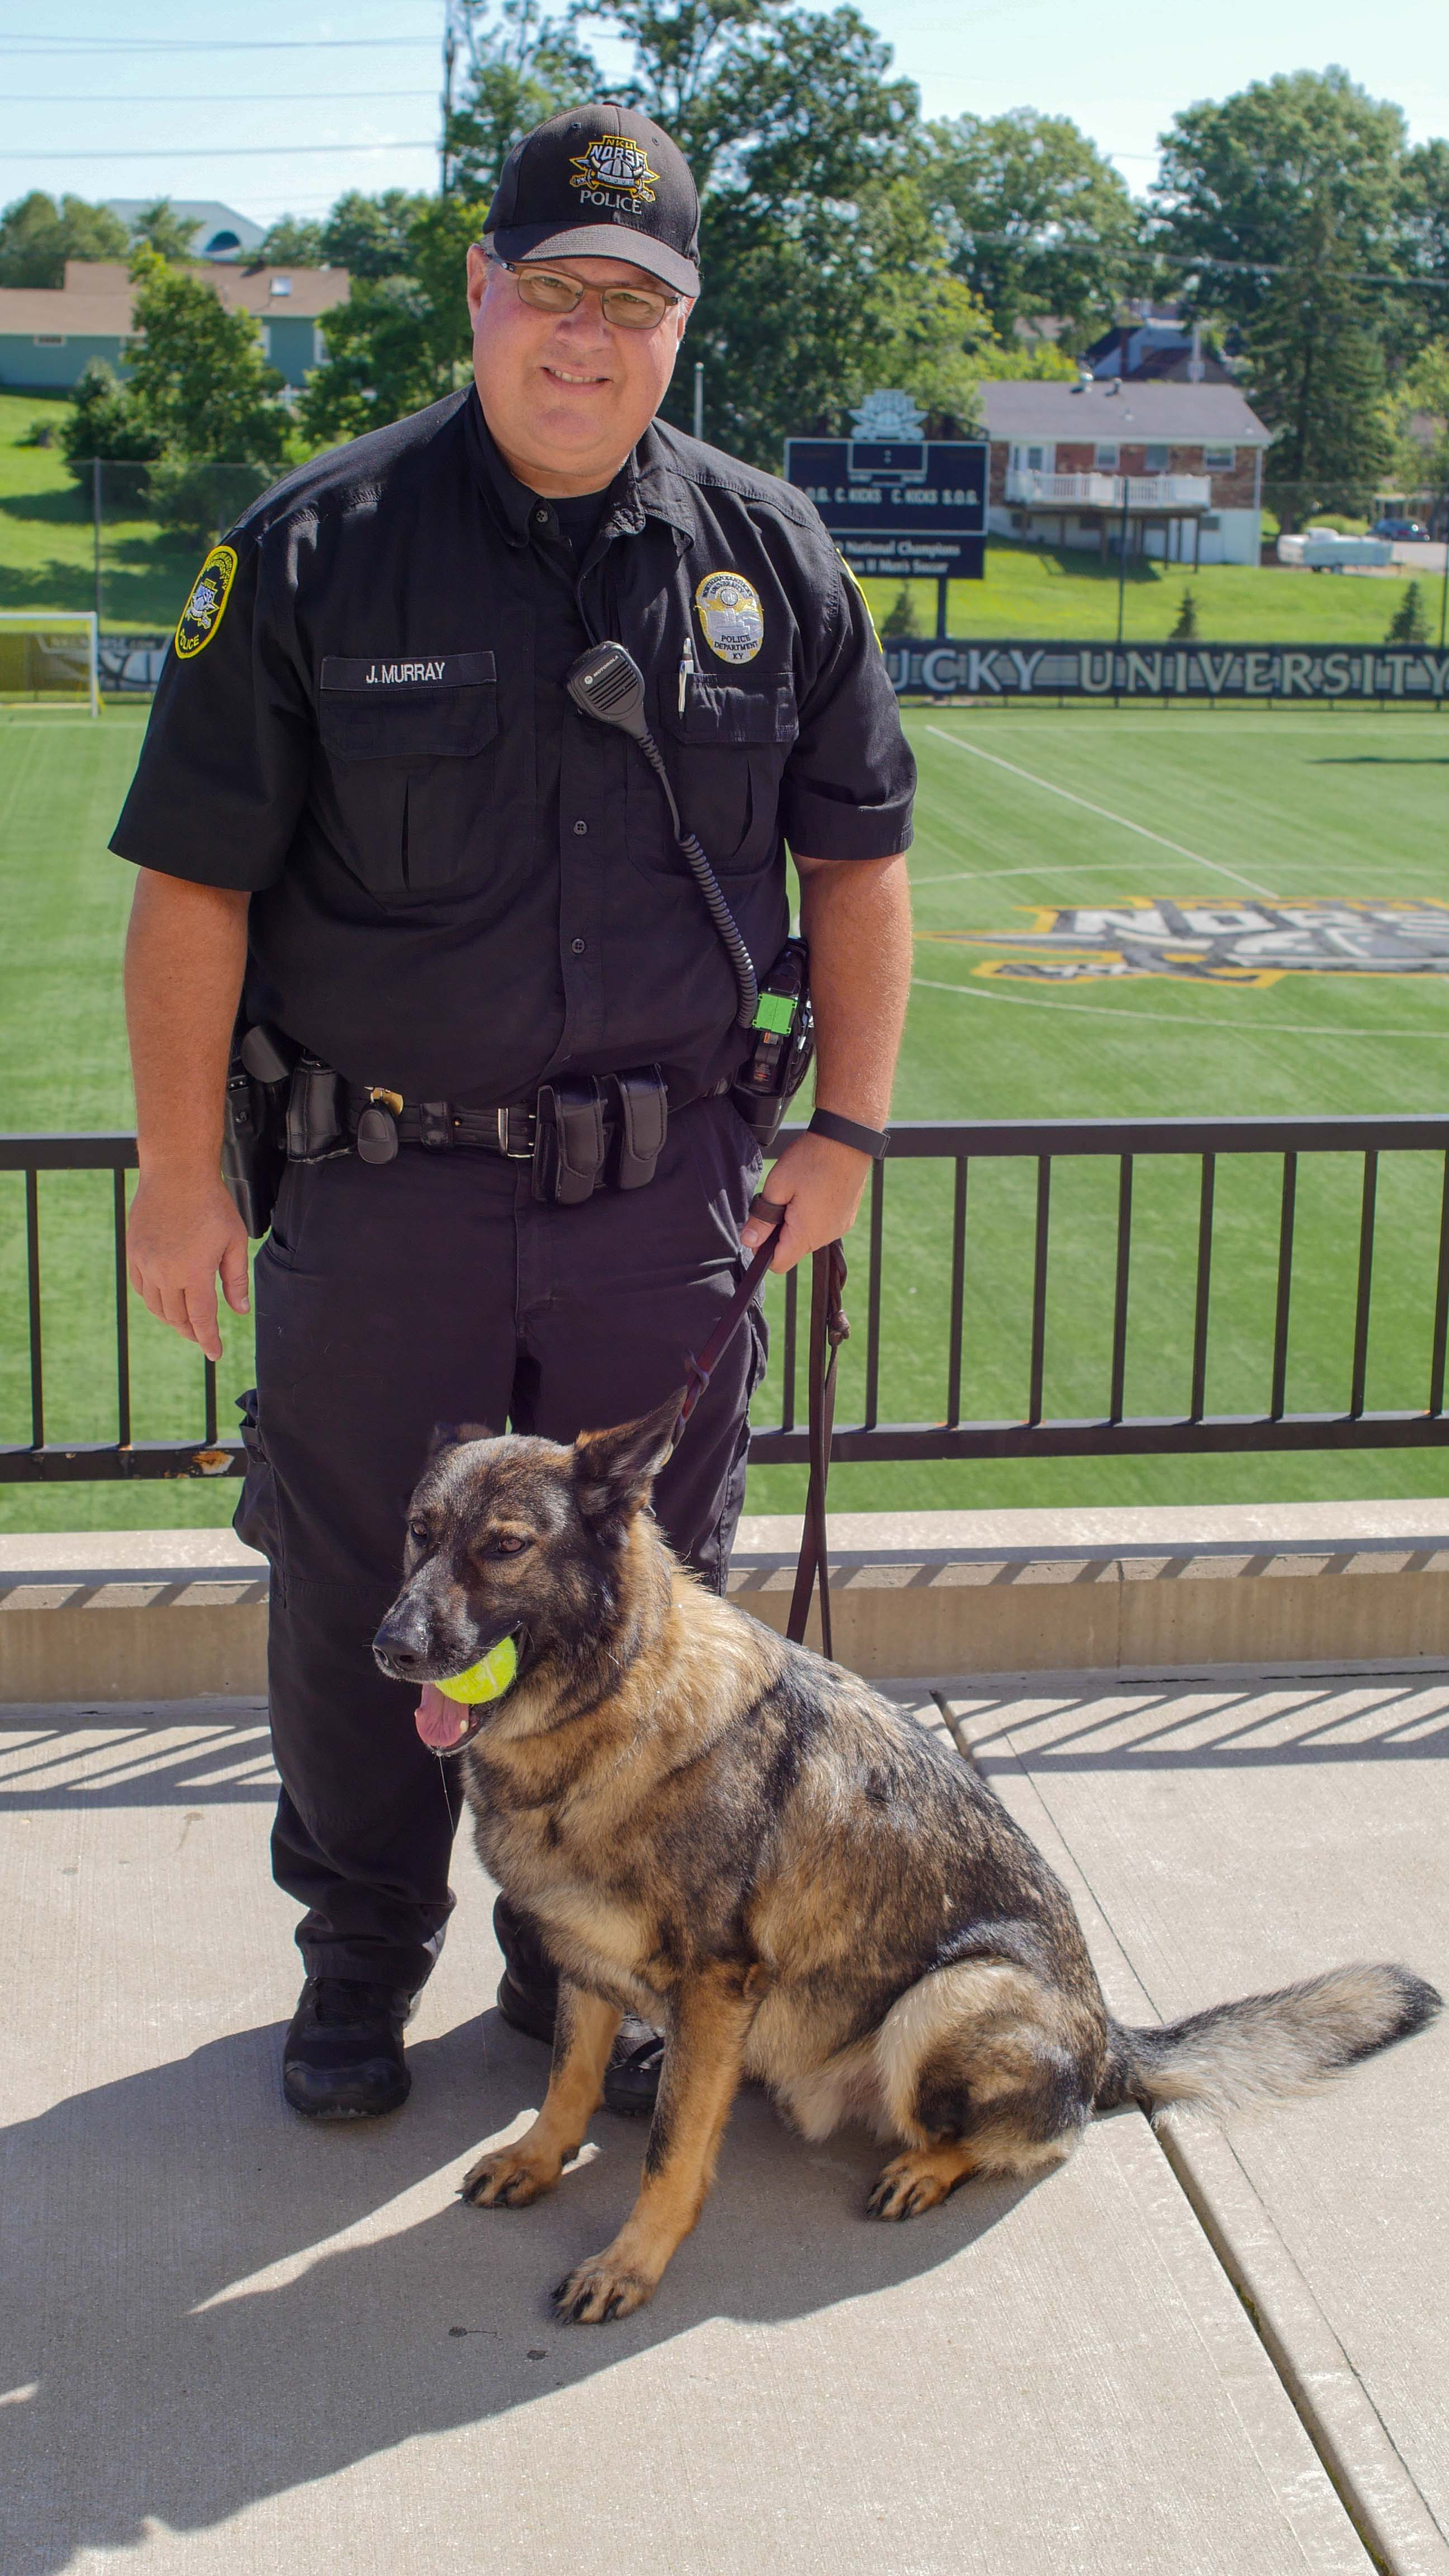 The+German+Shepard+has+been+serving+campus+for+three+and+half+years.+Arritt+has+seen+NKU+through+three+different+police+chiefs.+